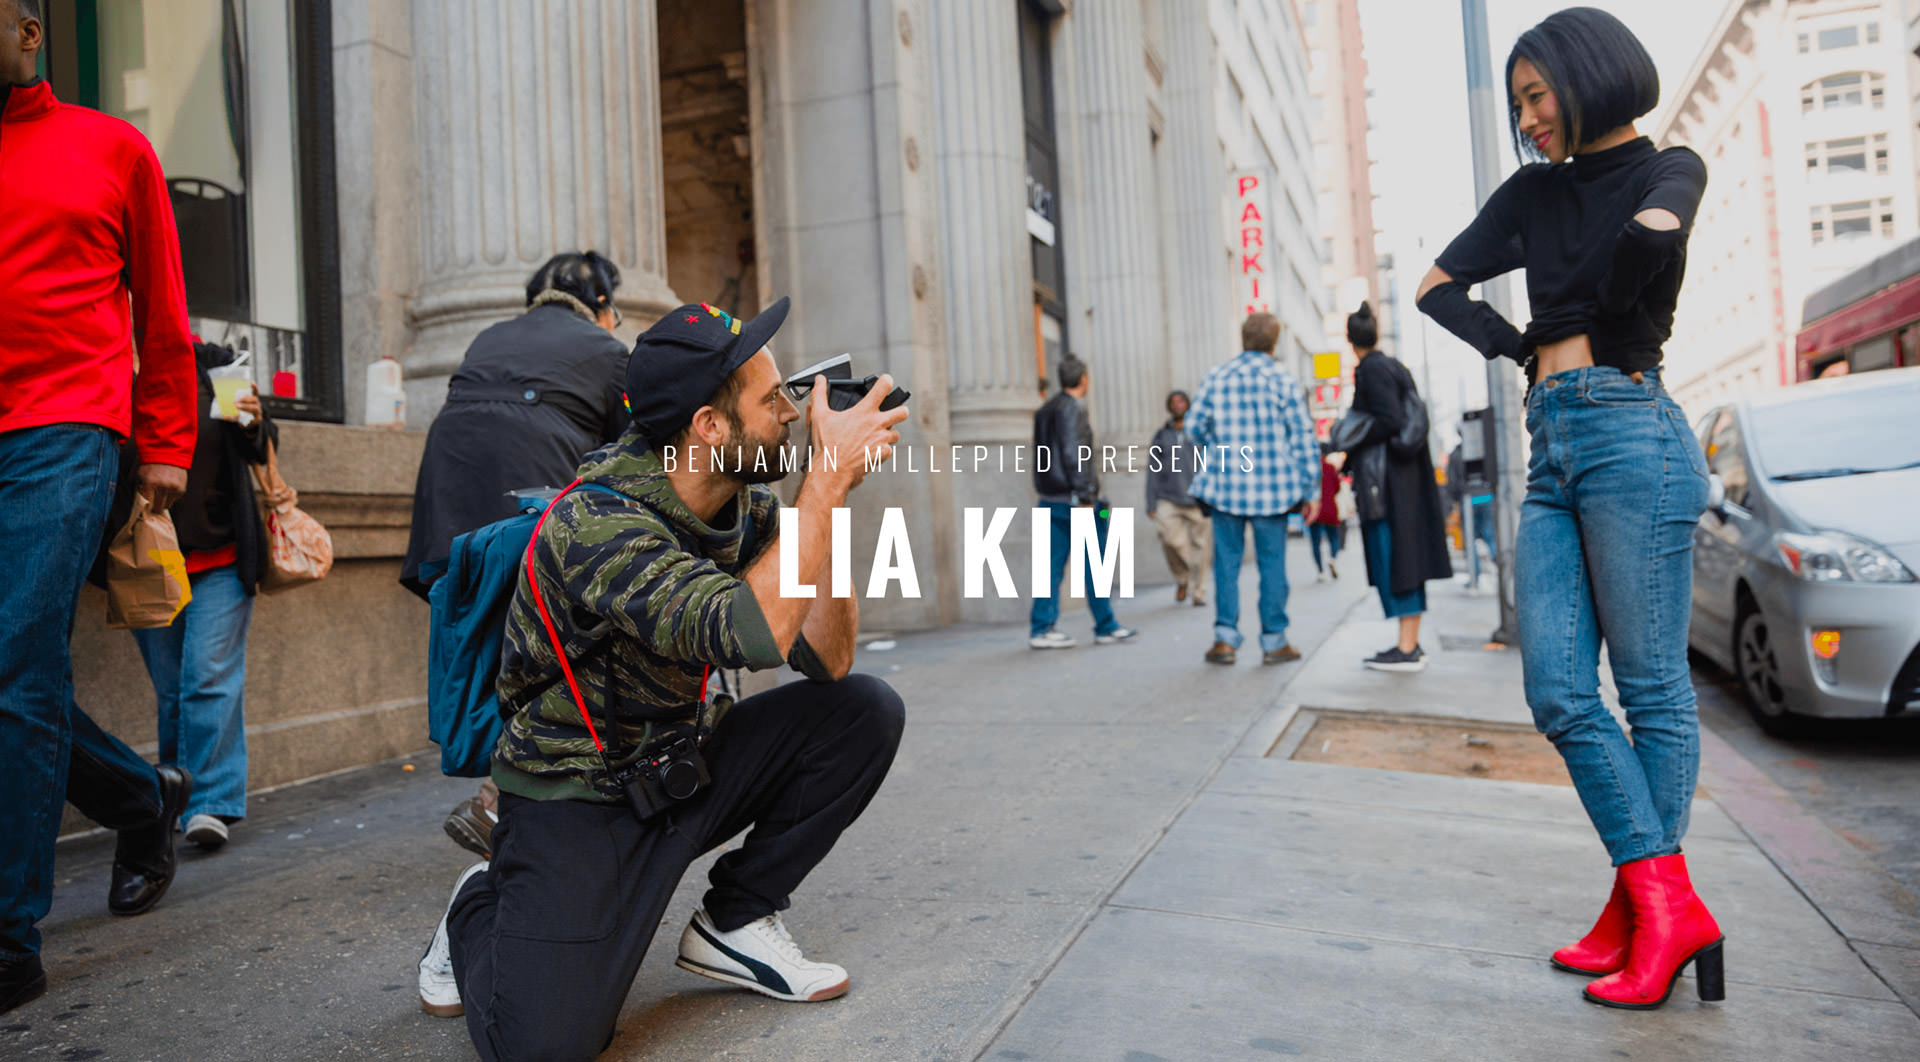 Benjamin Millepied presents Lia Kim